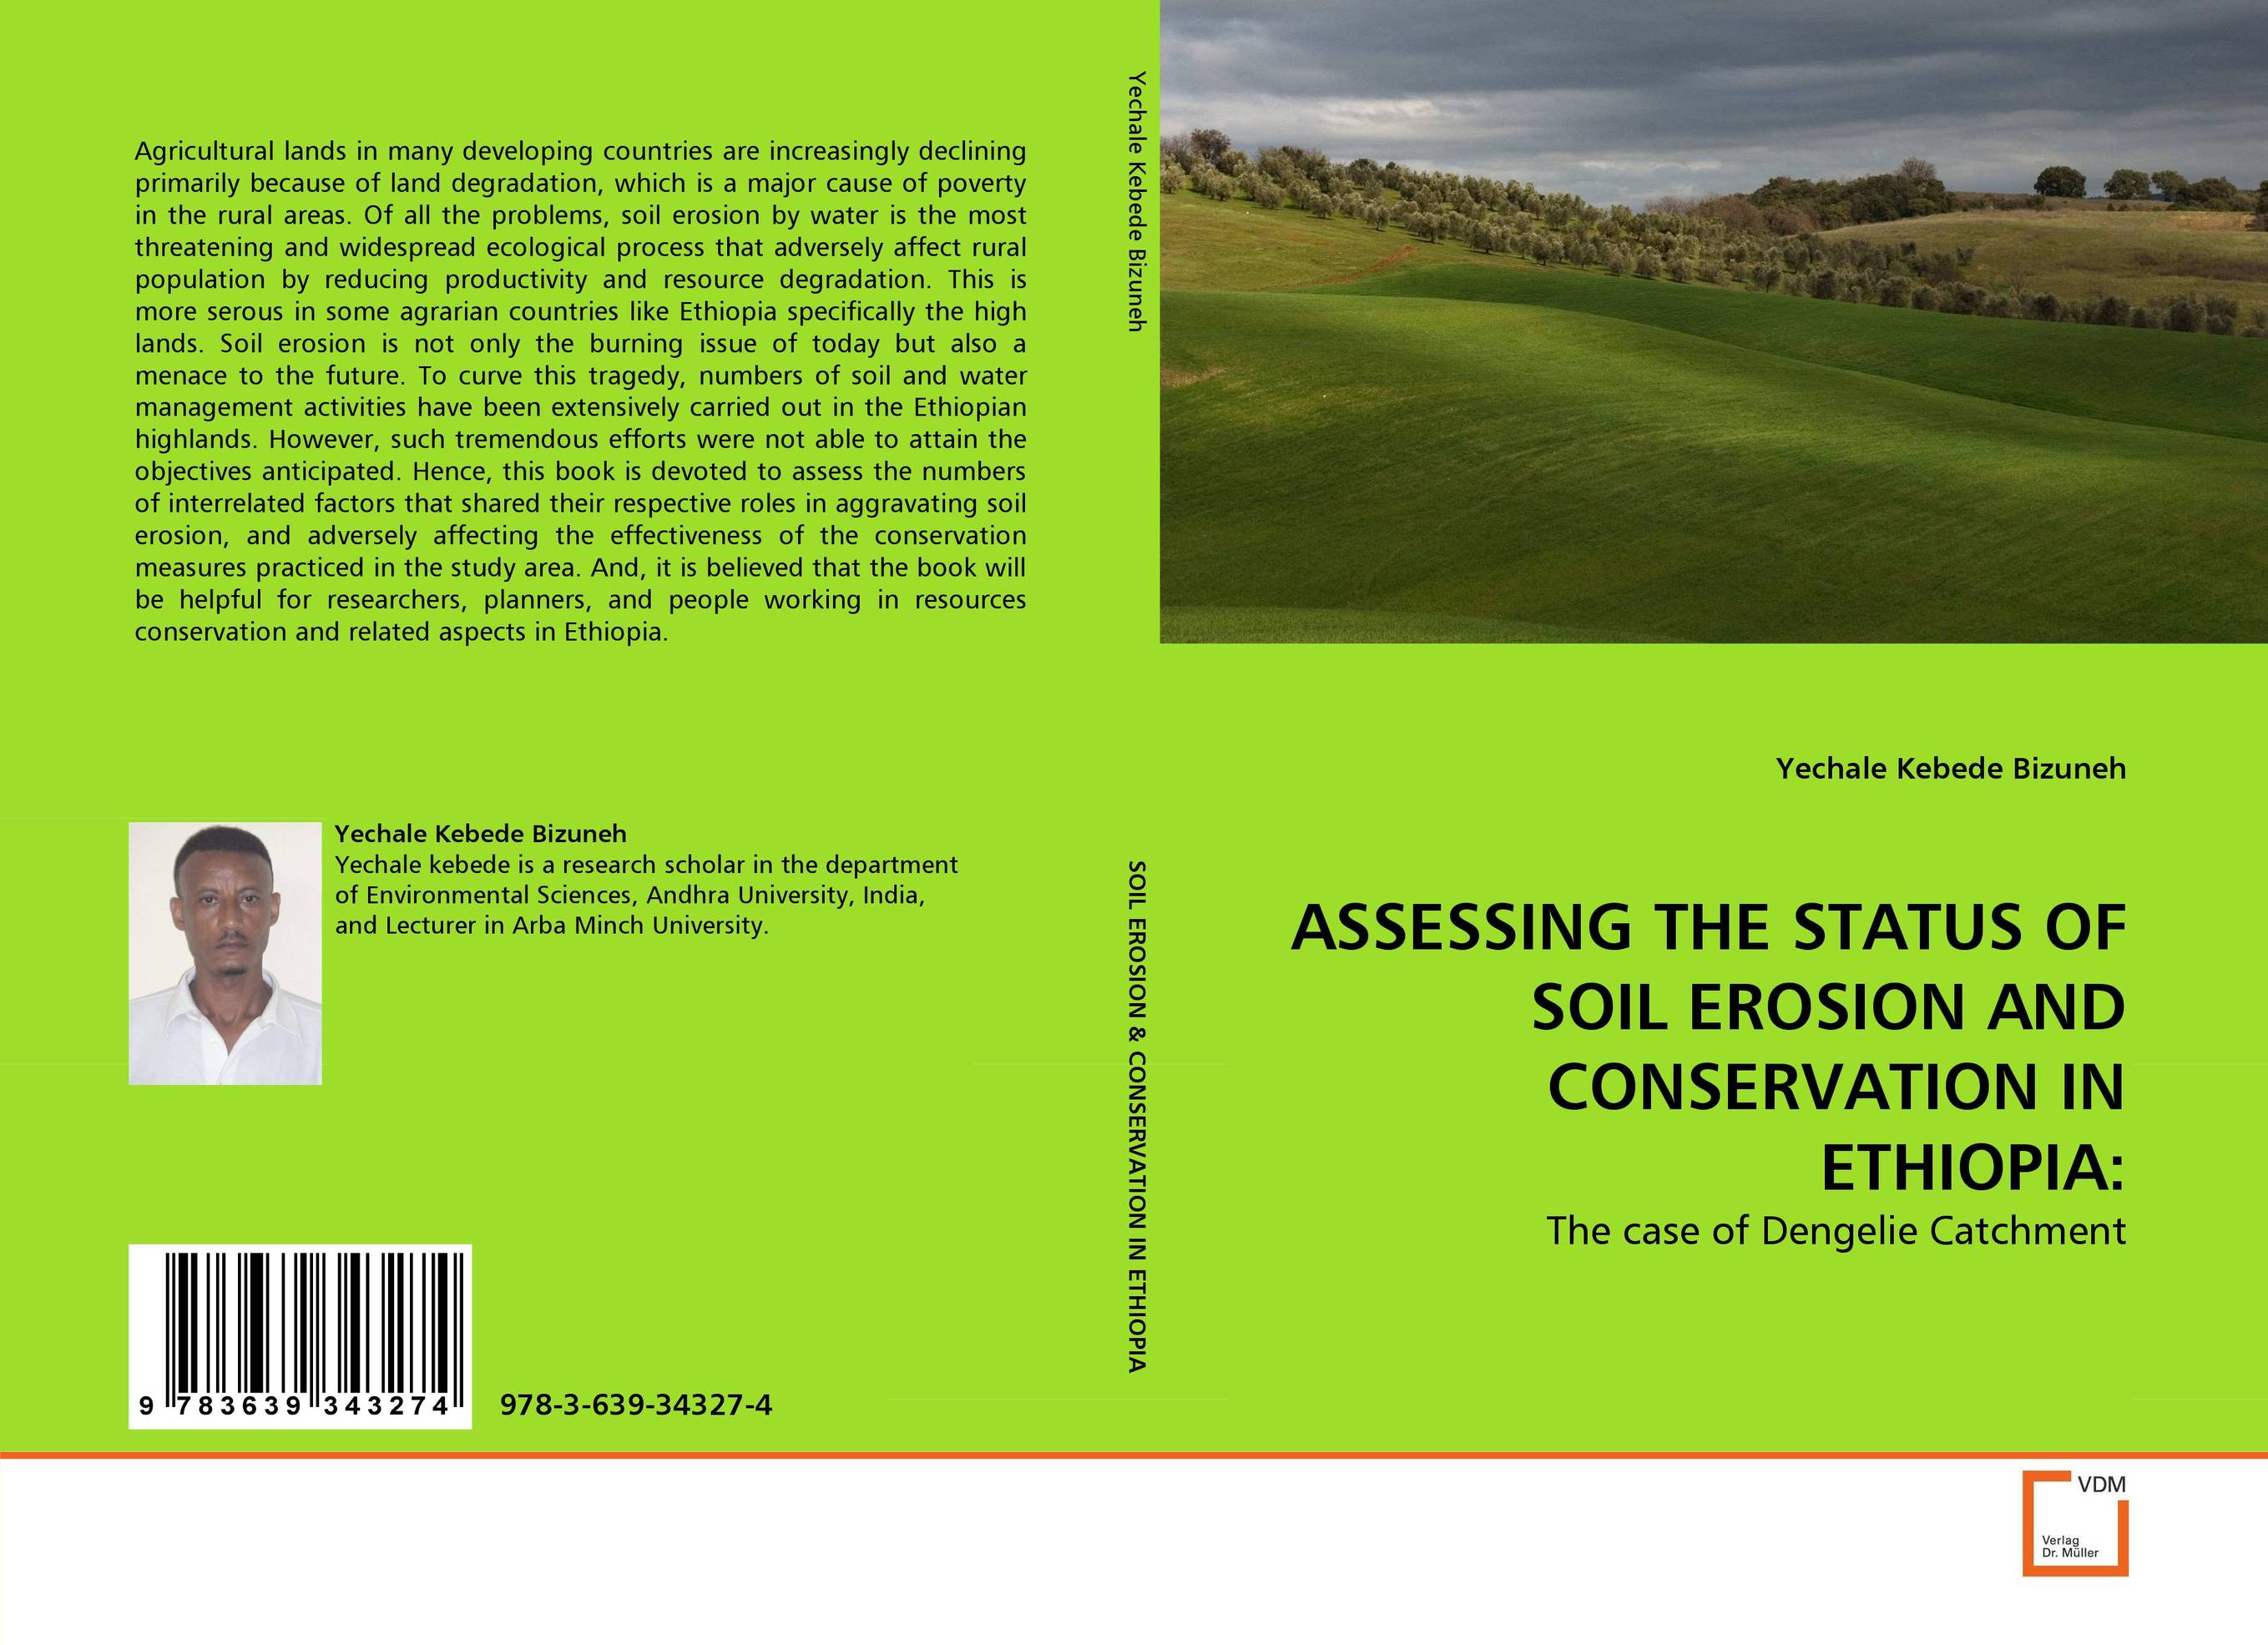 ASSESSING THE STATUS OF SOIL EROSION AND CONSERVATION IN ETHIOPIA: genanew bekele worku investment in land conservation in the ethiopian highlands